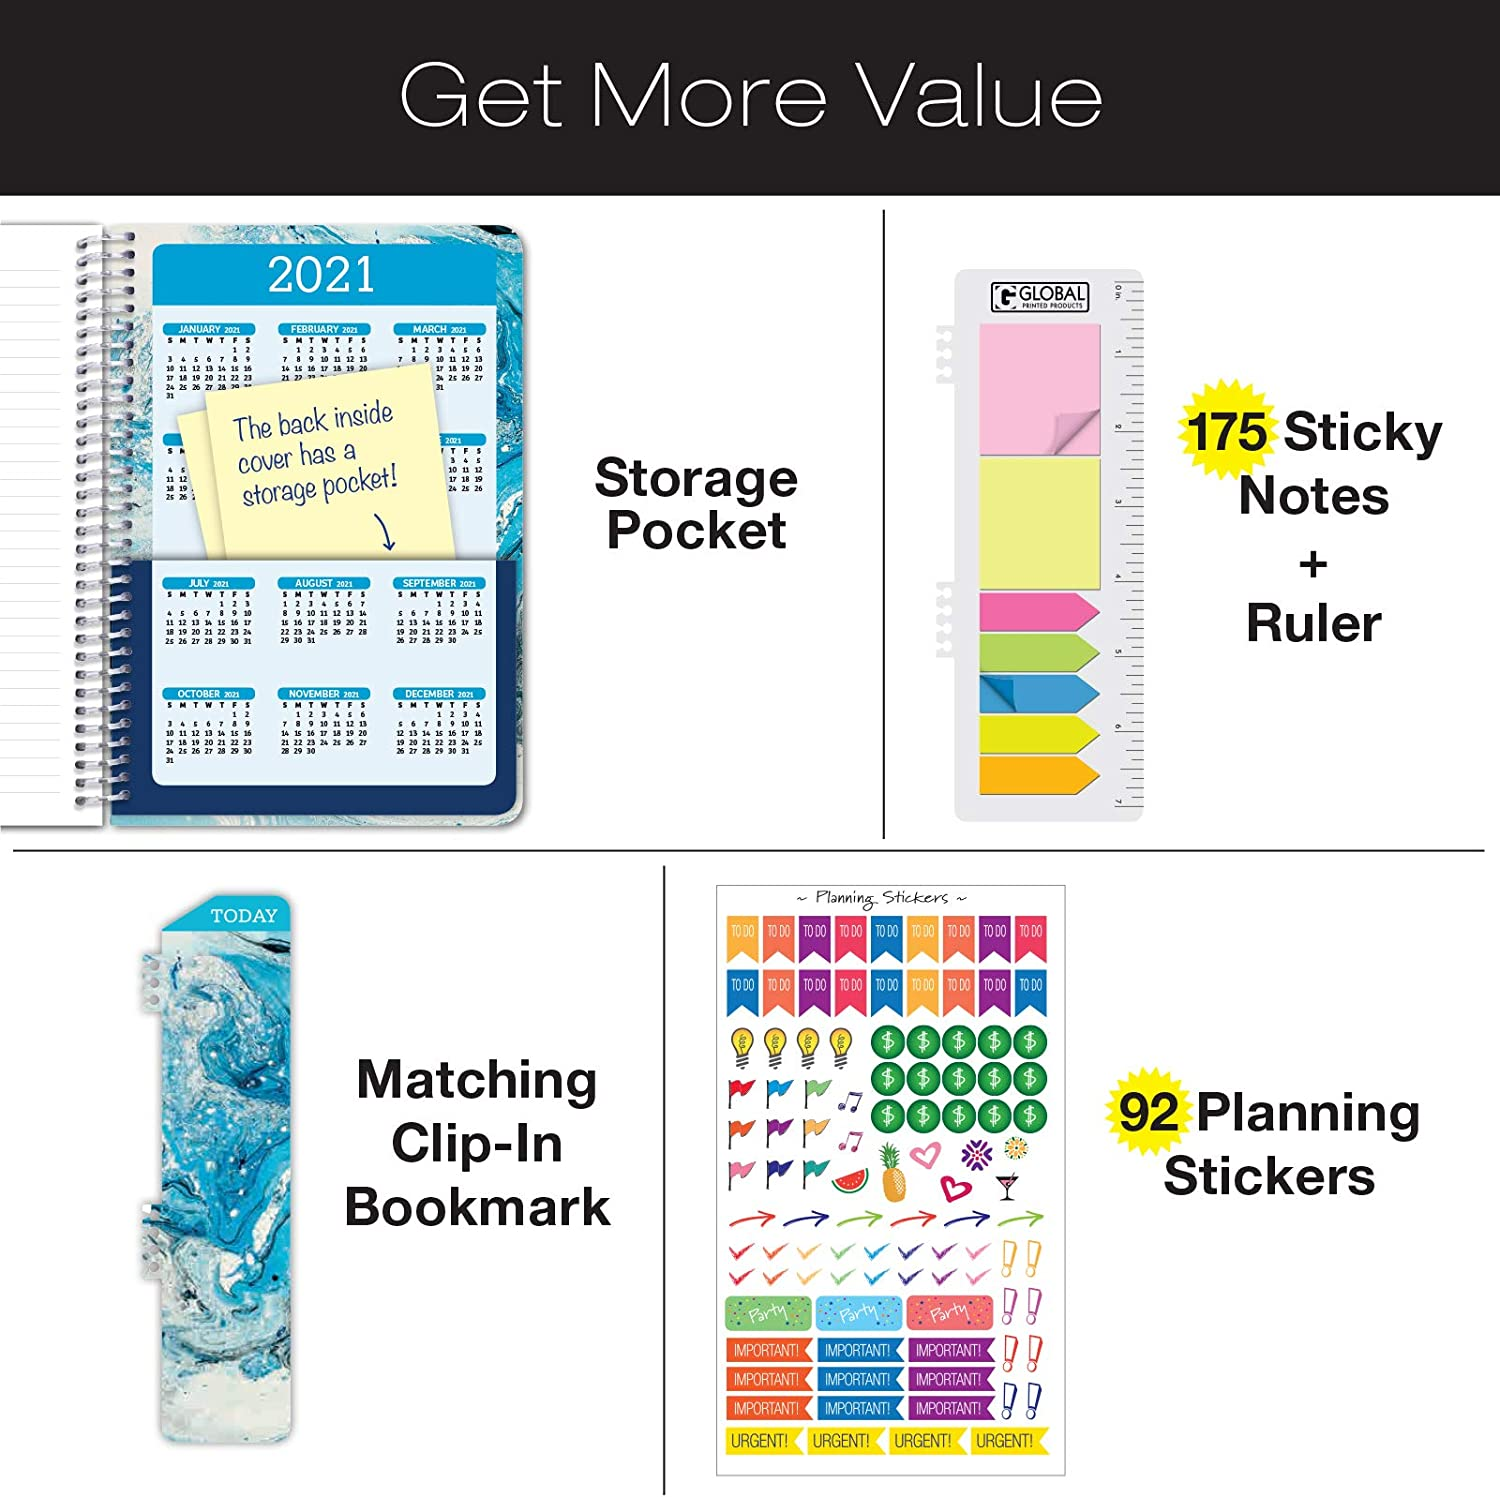 Bonus Bookmark HARDCOVER Calendar Year 2020 Planner: Pocket Folder and Sticky Note Set 5.5x8 Daily Weekly Monthly Planner Yearly Agenda November 2019 Through December 2020 Blue Marble